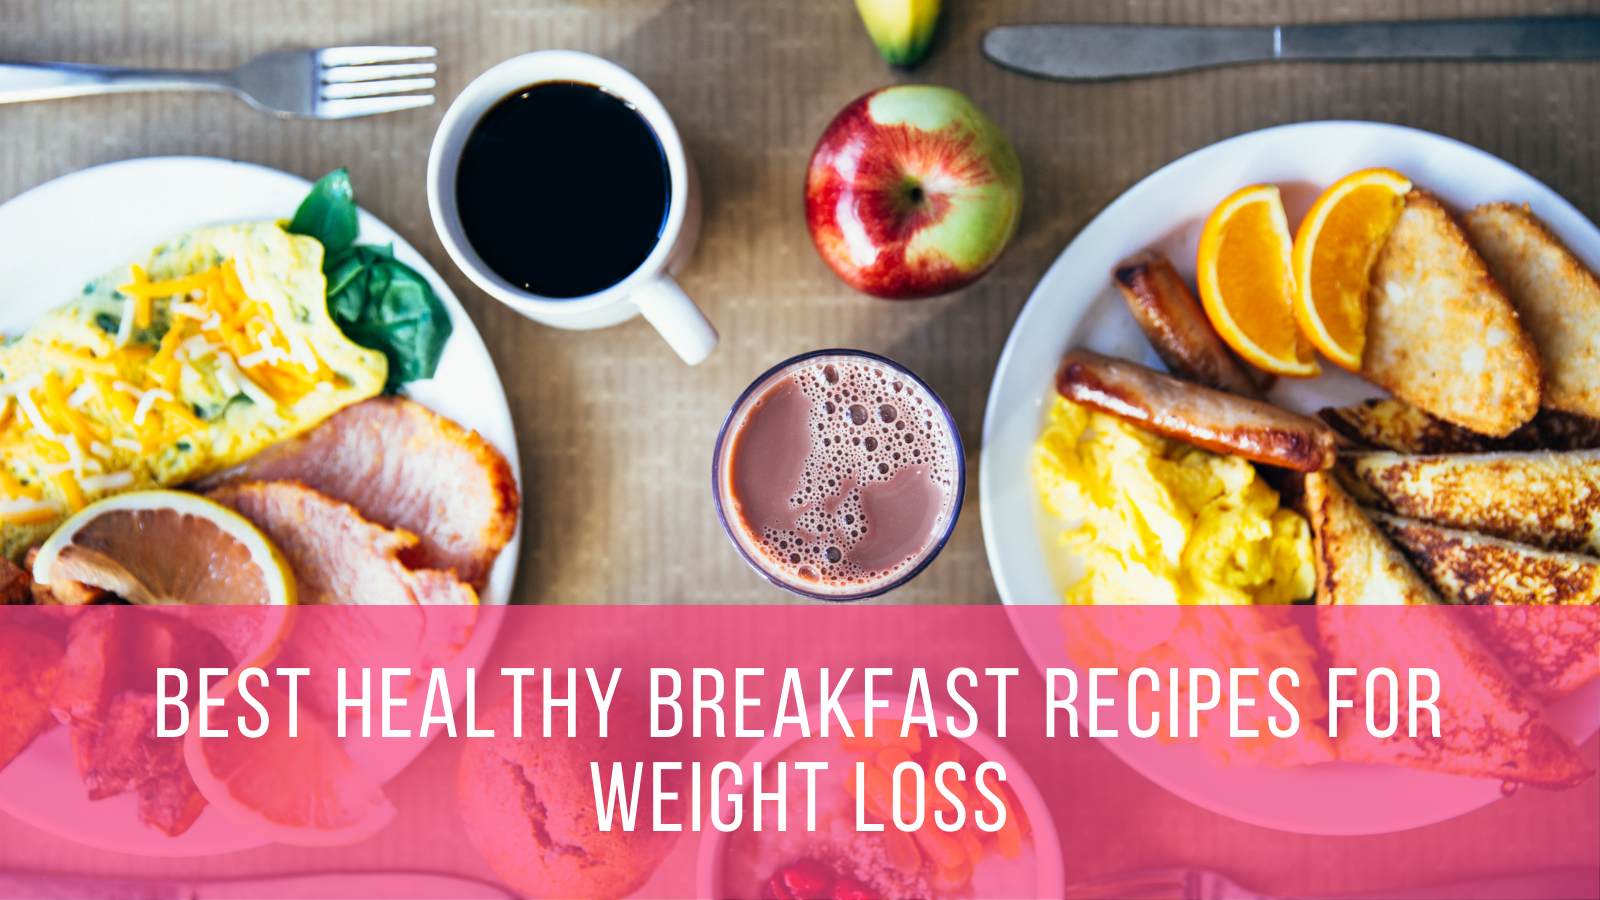 Best Healthy Breakfast Recipes for Weight Loss (Easy Cook It)